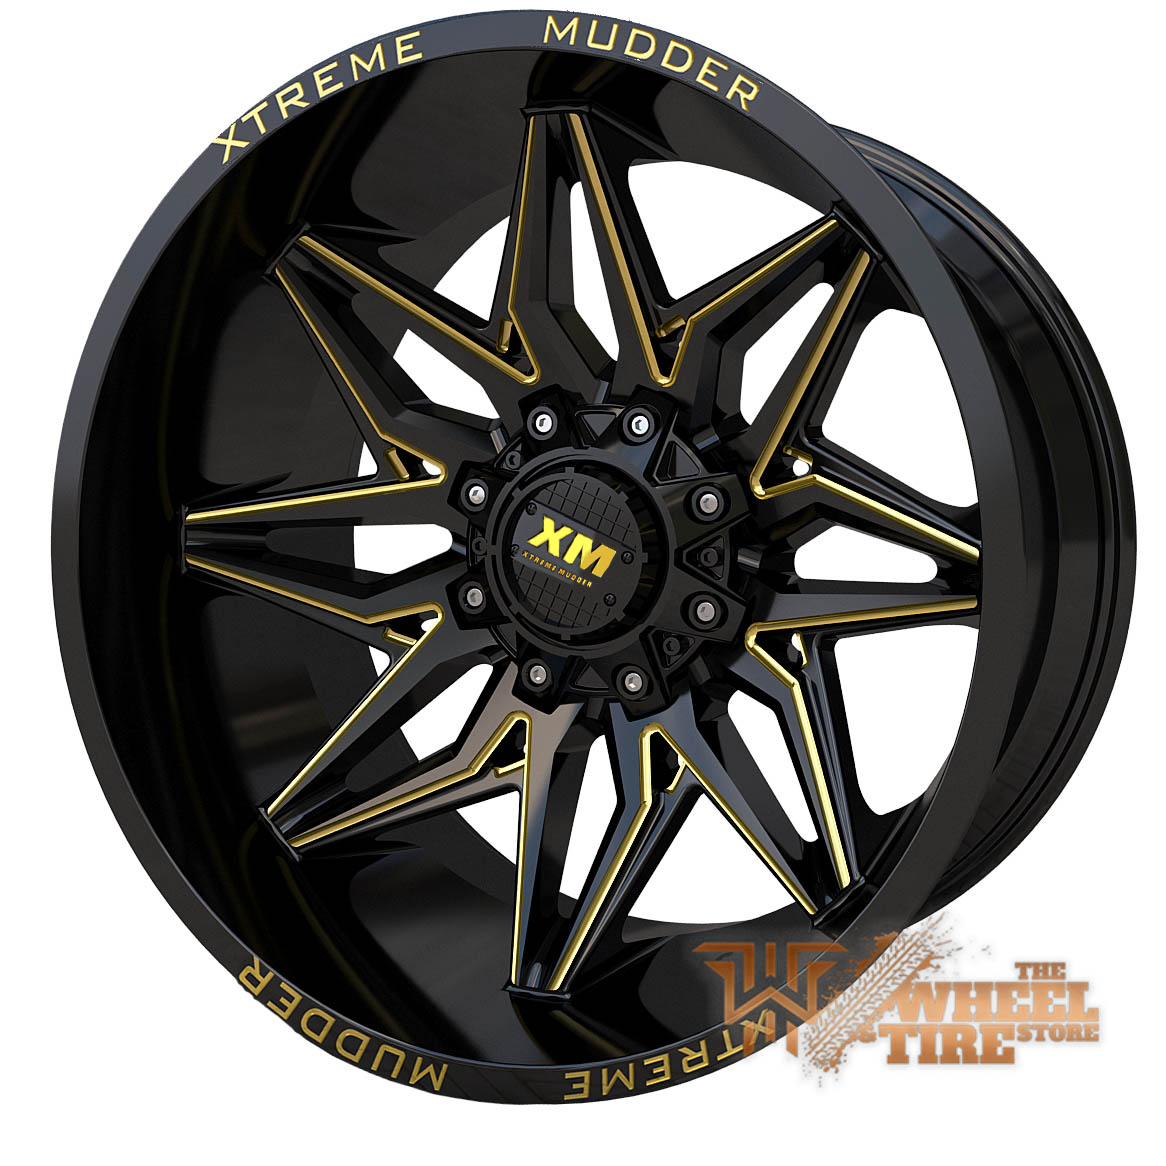 XTREME MUDDER XM-342 Wheel in Gloss Black Yellow Milled (Set of 4)